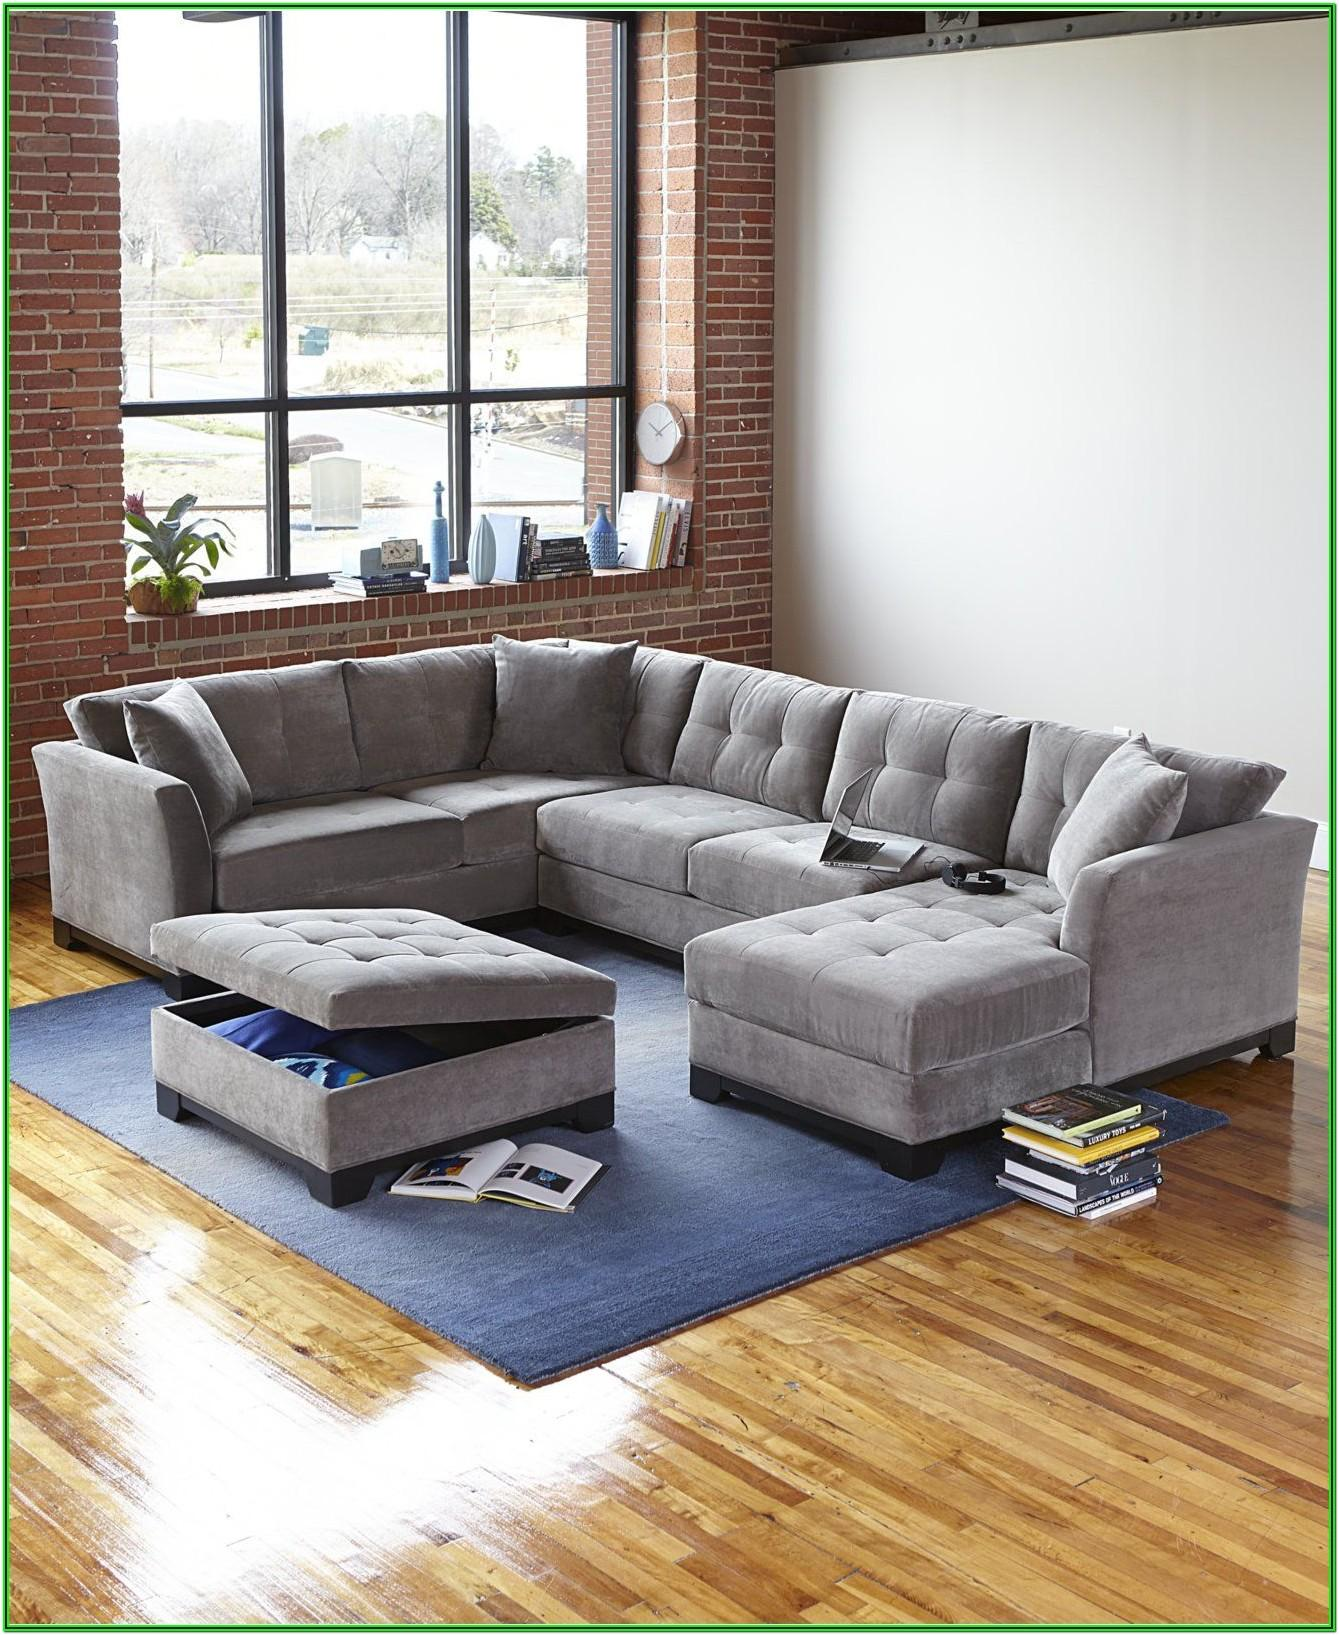 3 Piece Living Room Set With Chaise